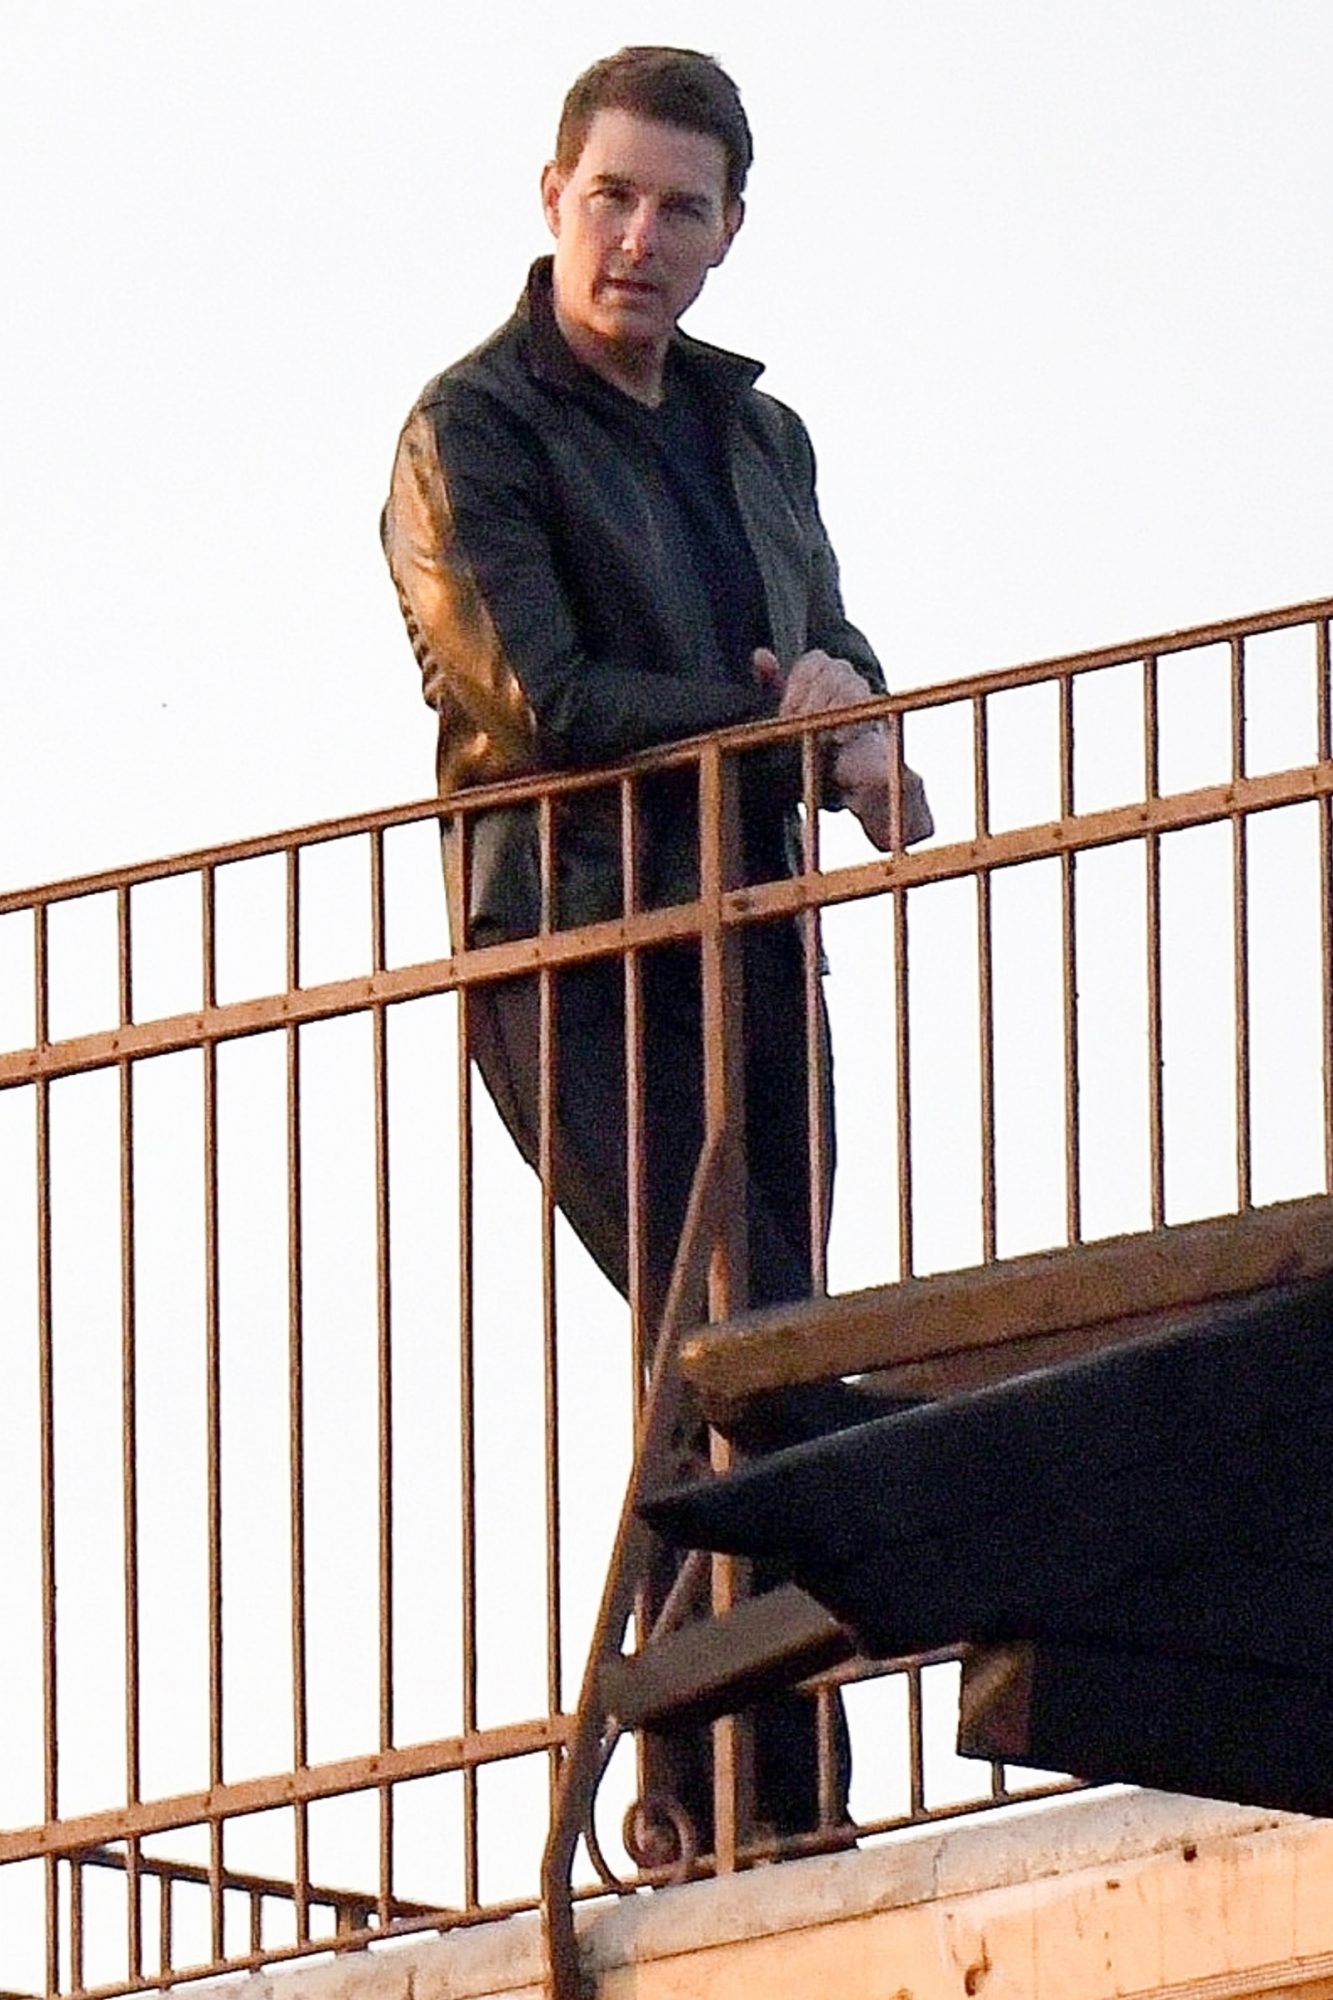 Tom Cruise and Rebecca Fergusson filming a scene for Mission Impossible 7 on a rooftop in Venice